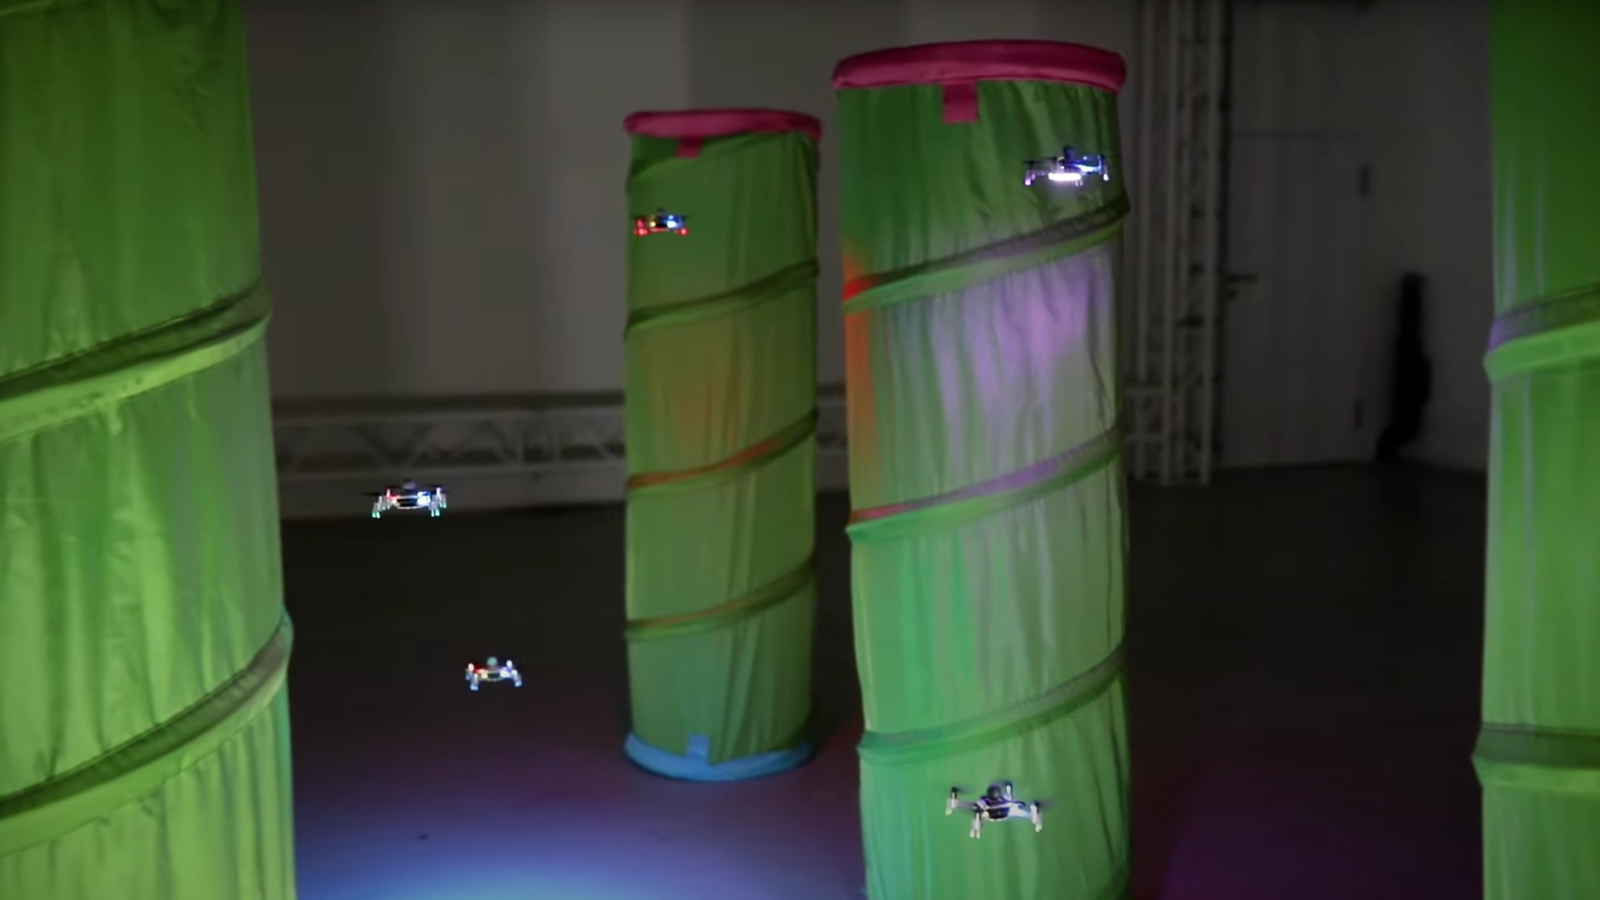 Drone swarms avoid obstacles and collisions